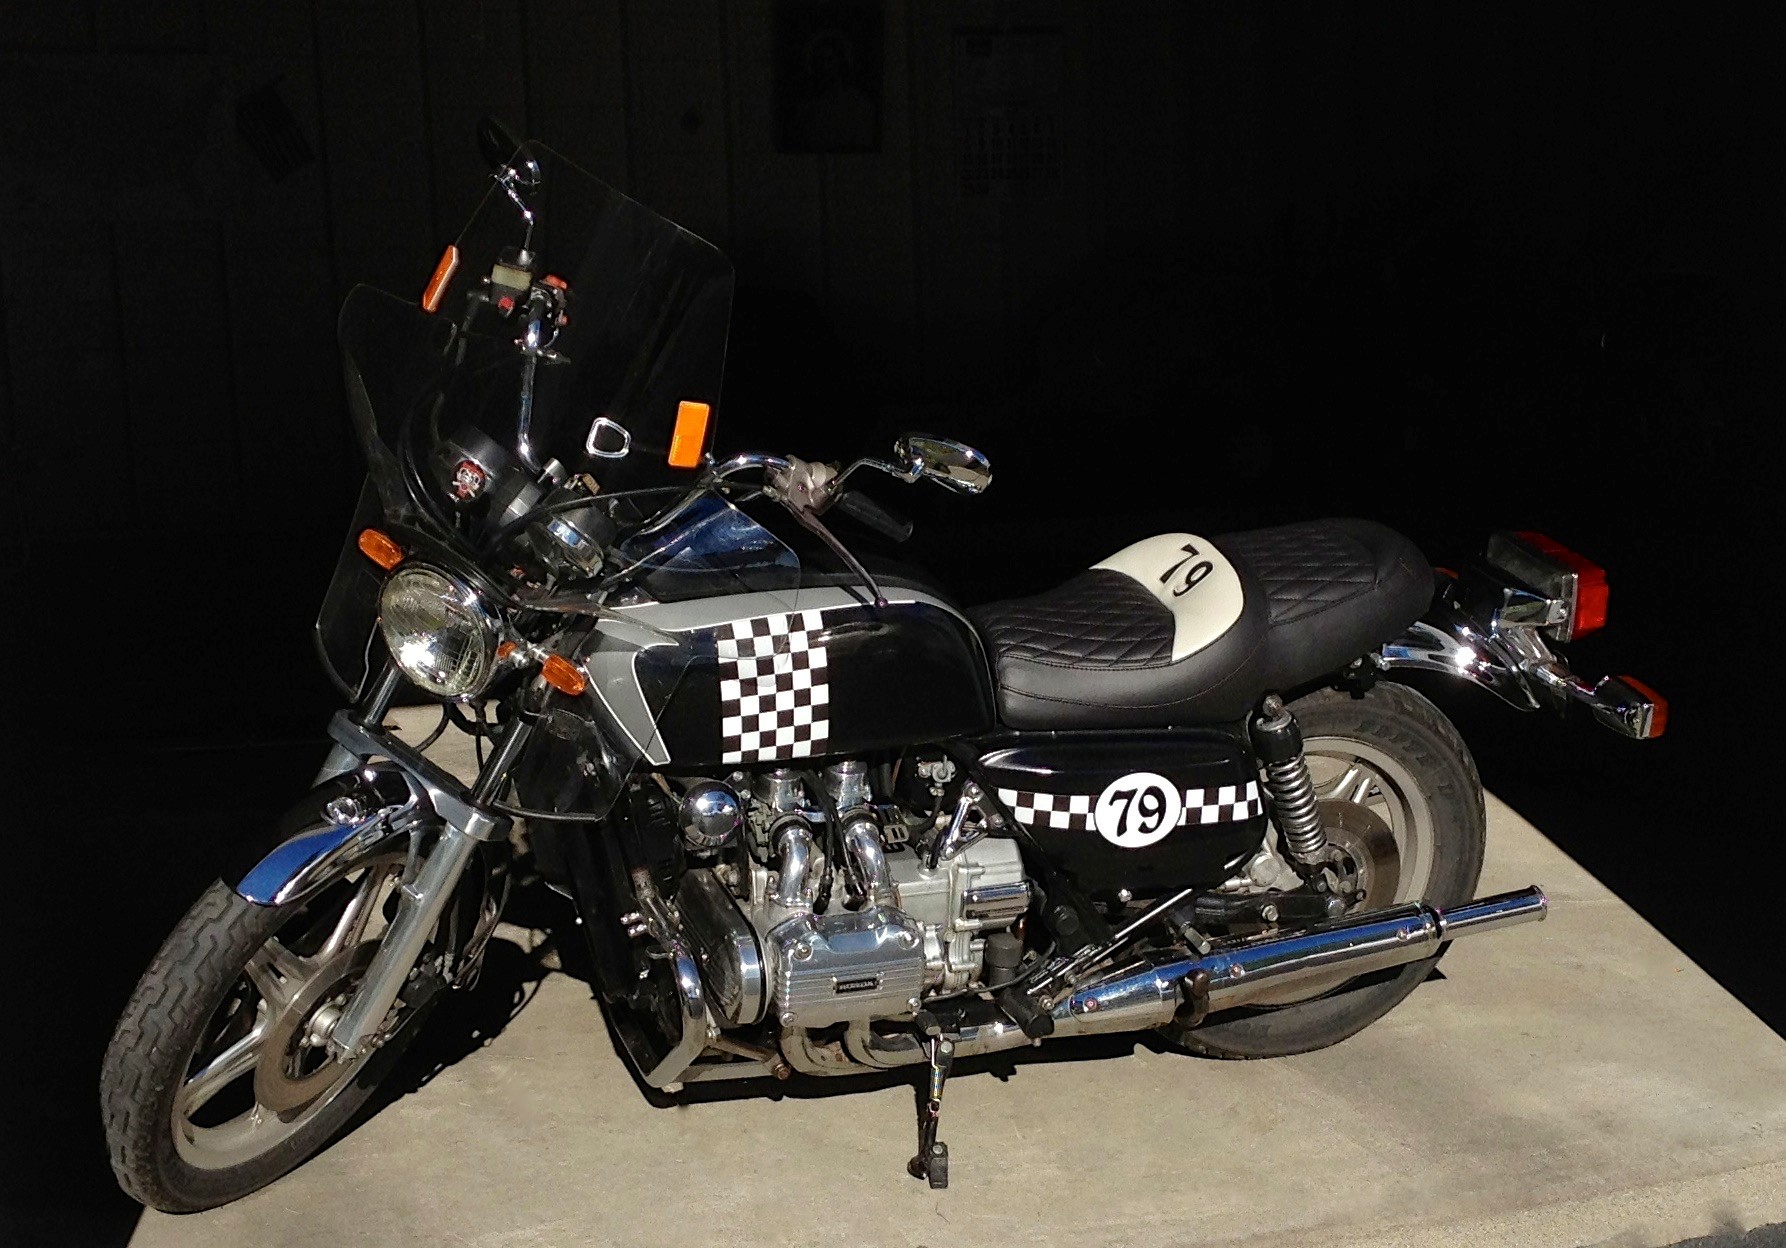 Motorcycle 1974 Kawasaki 1600 V8 Details and Pictures